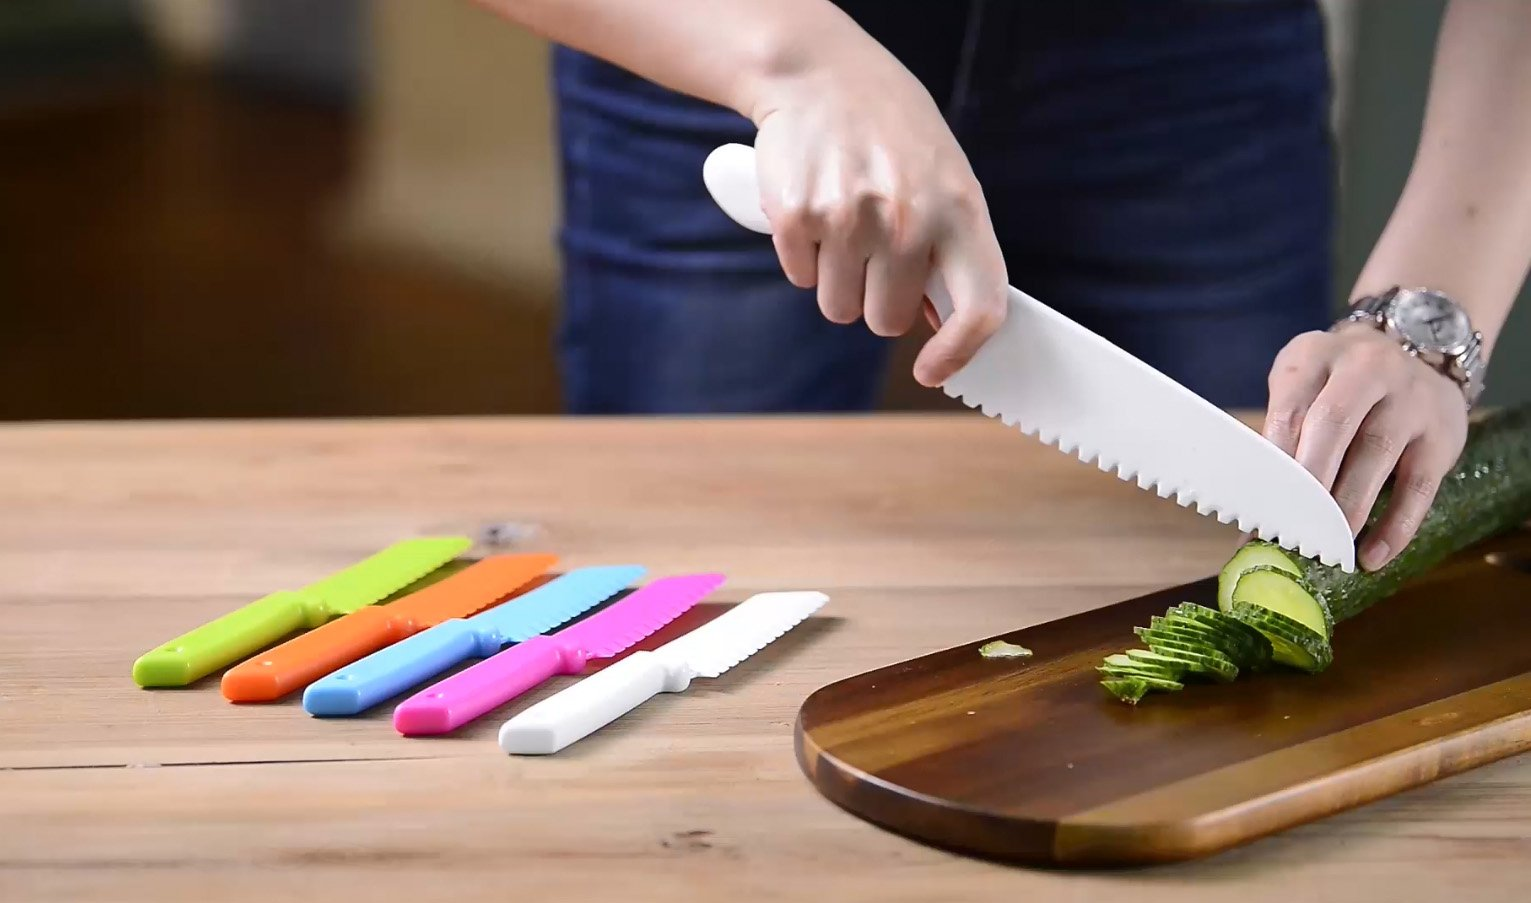 ONUPGO Plastic Kitchen Knife Set with Serrated Cutting Edges - Kids Safe Chef Nylon Knife/Children's Cooking Knives for Fruit, Bread, Cake, Lettuce and Salad (White) by OnUpgo (Image #5)